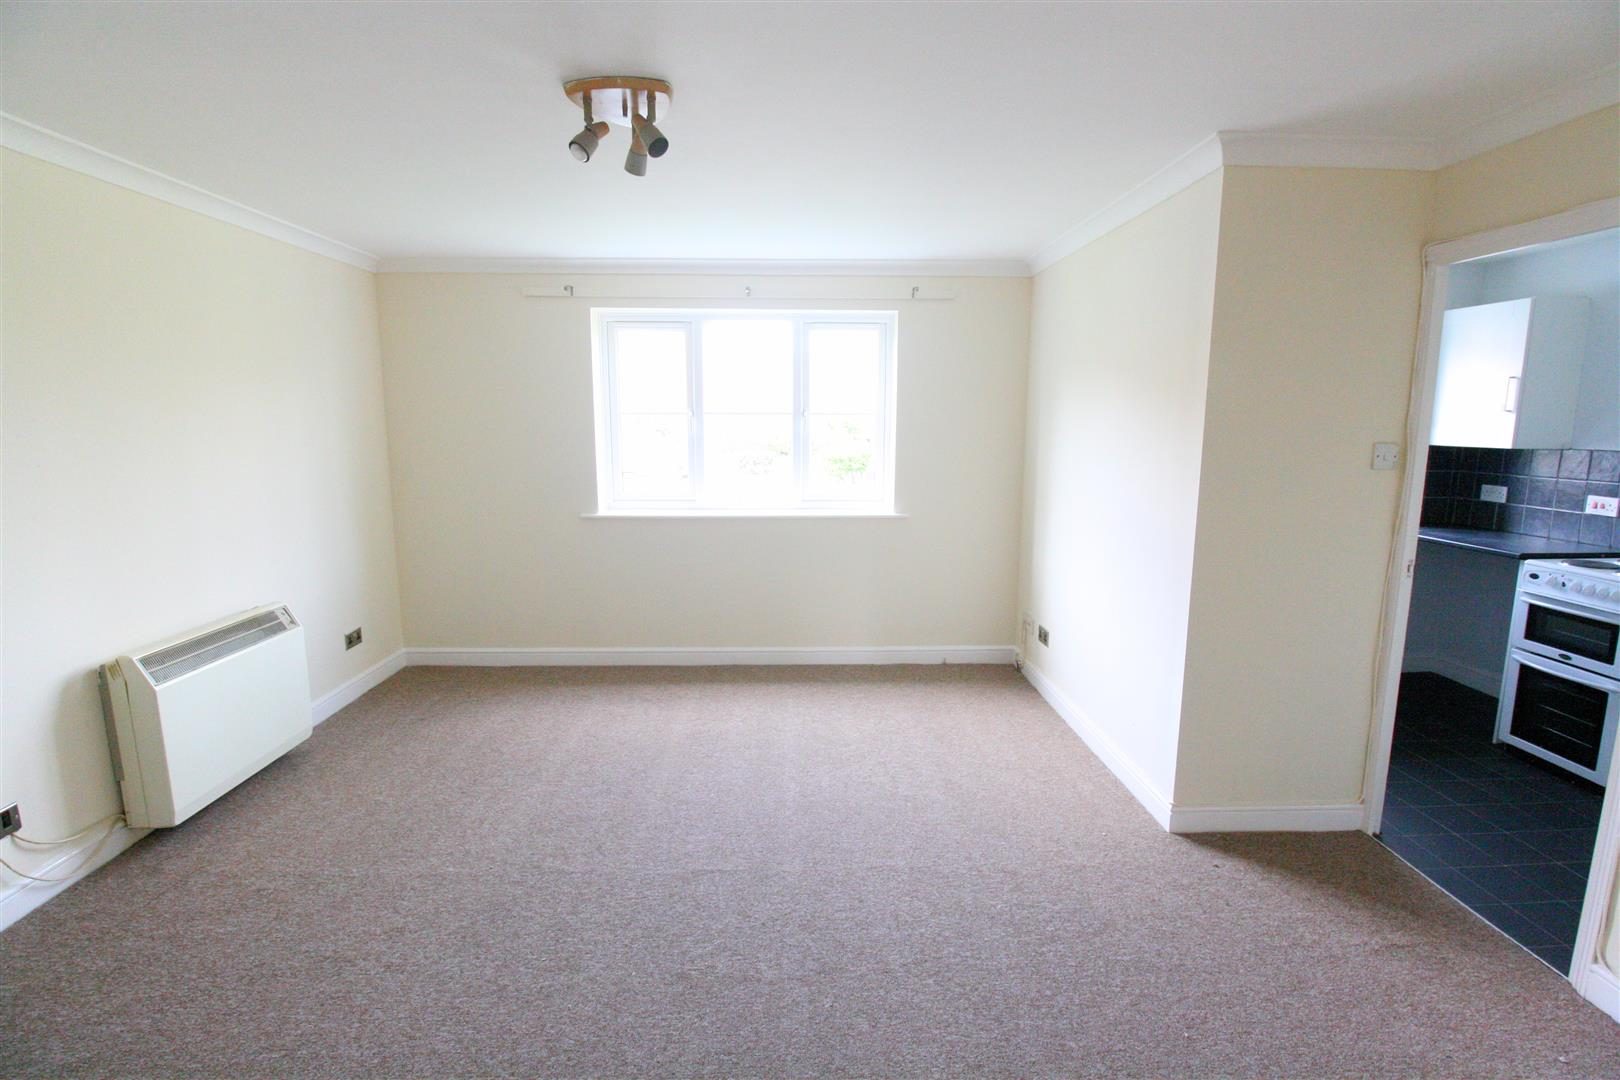 2 bed flat to rent in Phillips Close, Carshalton  - Property Image 6